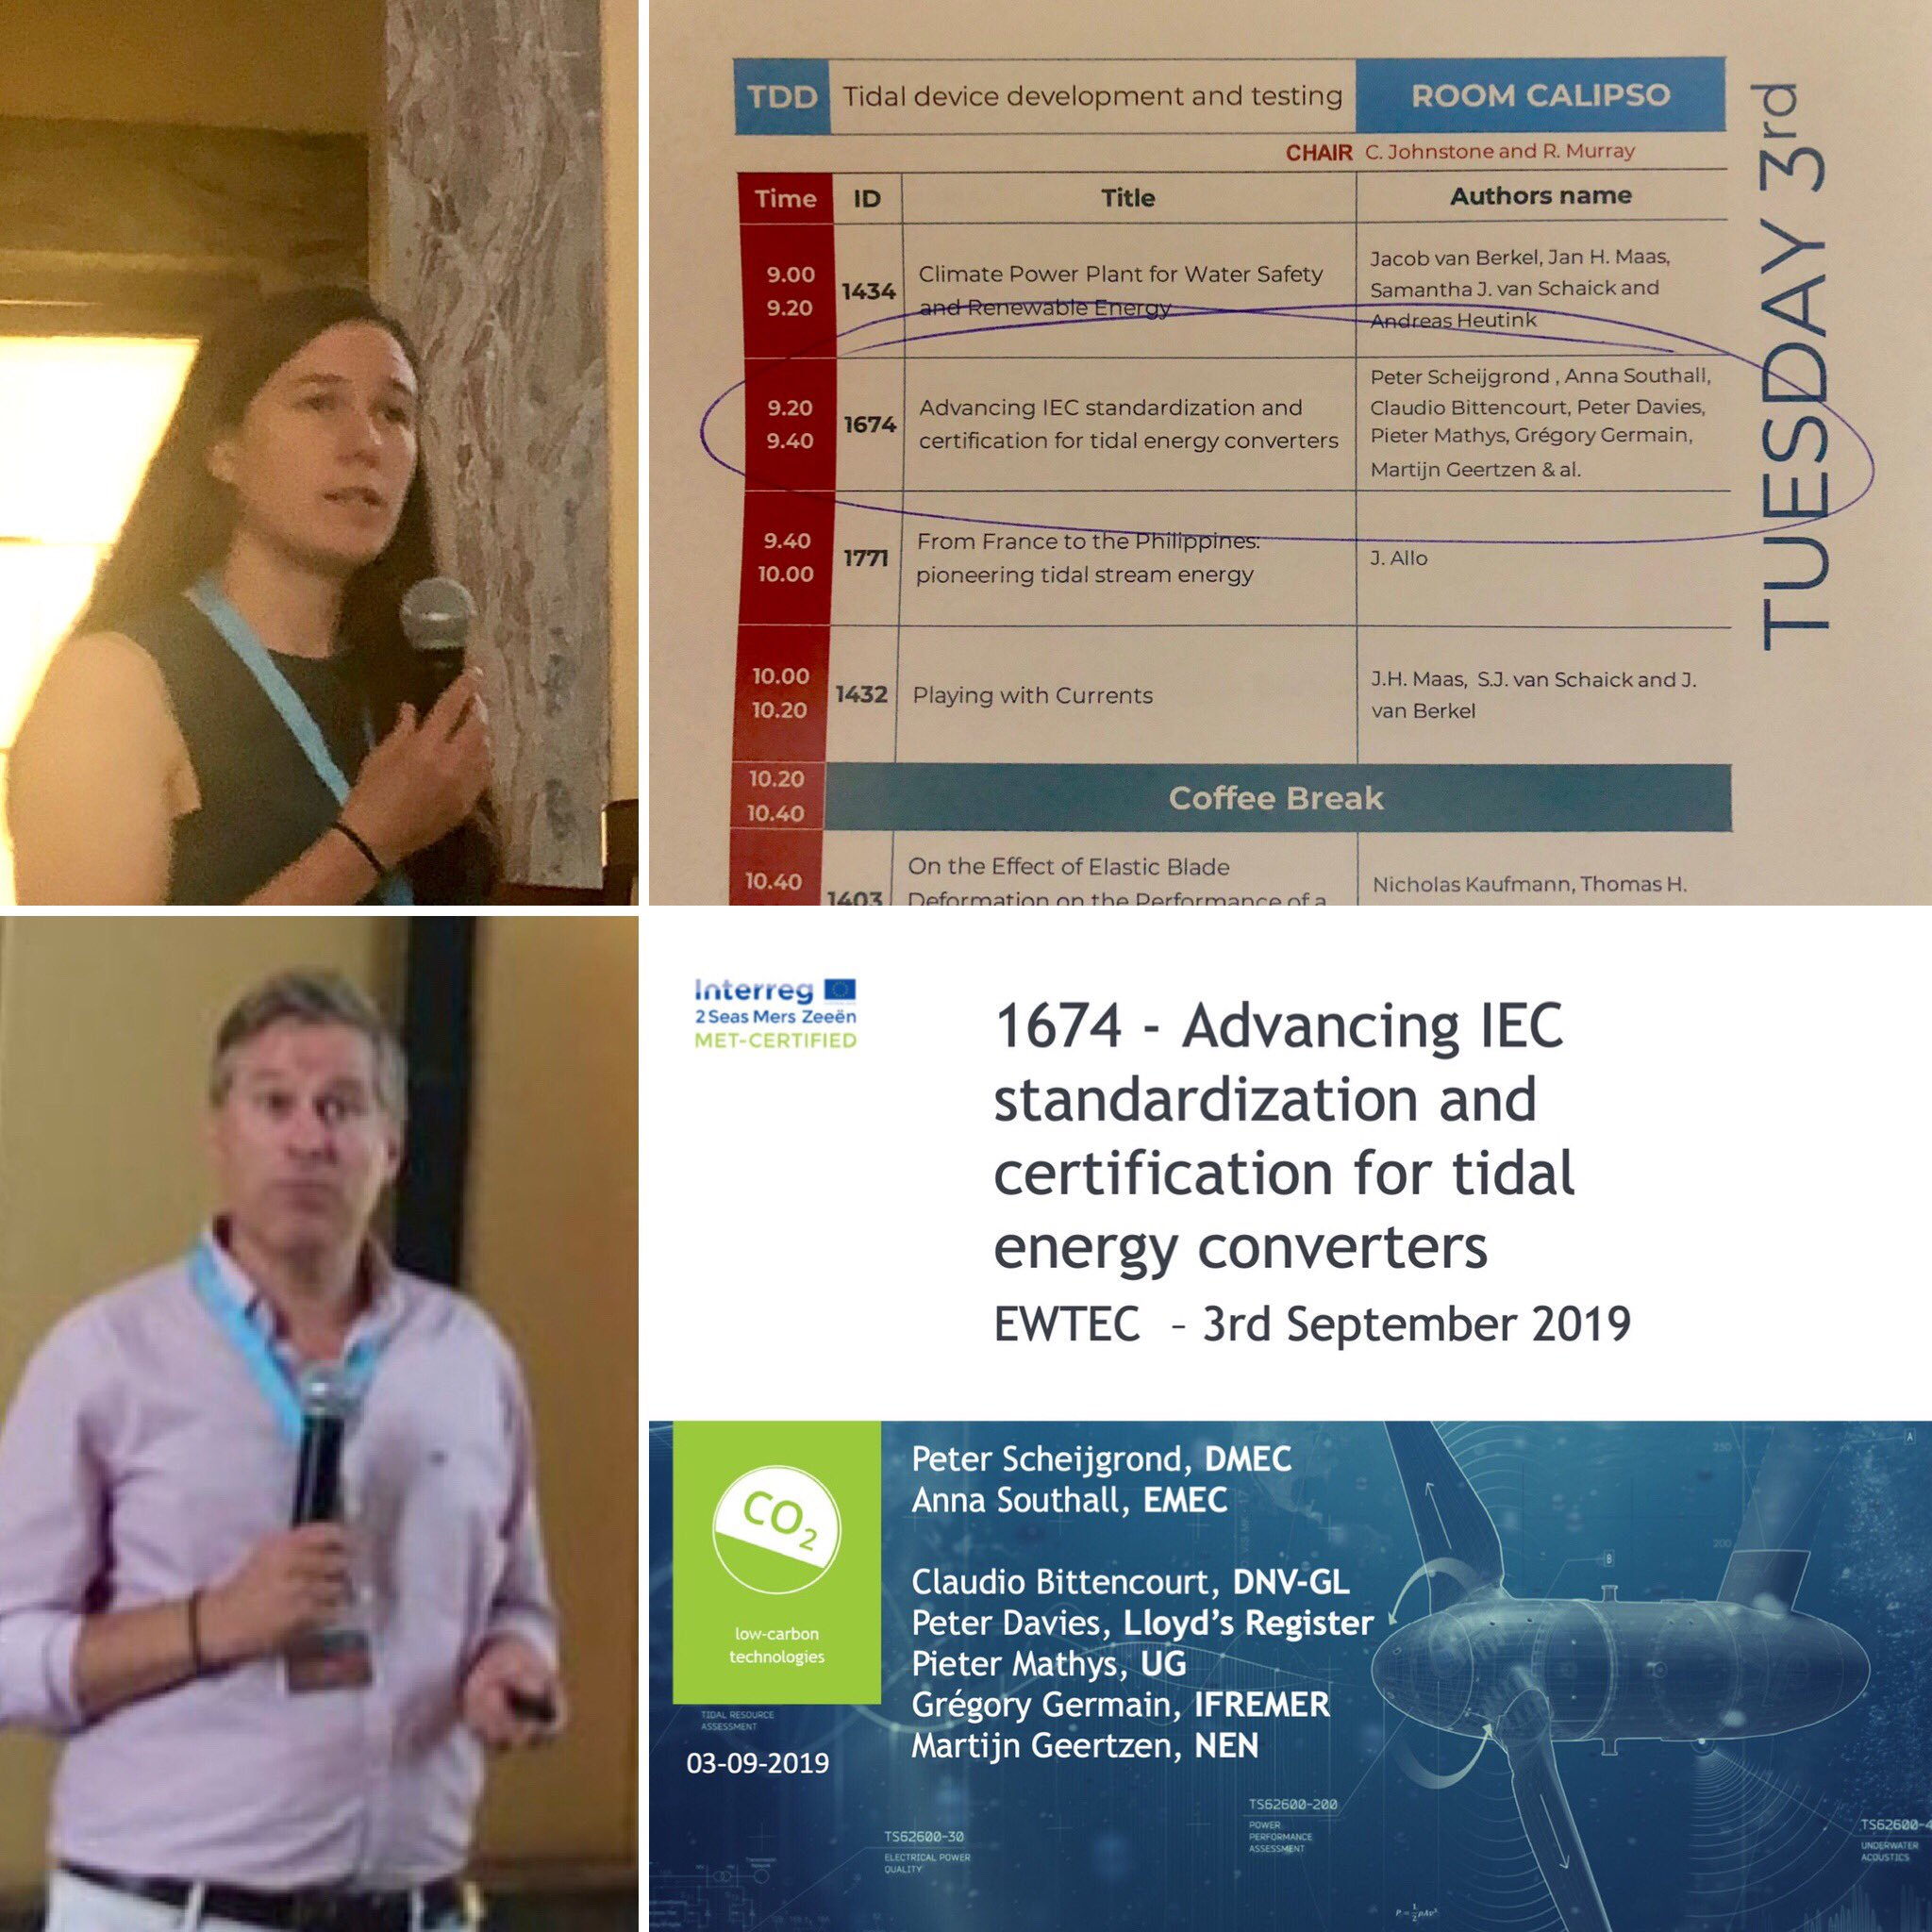 MET-CERTIFIED papers presented during European Wave and Tidal Energy Conference in Napels